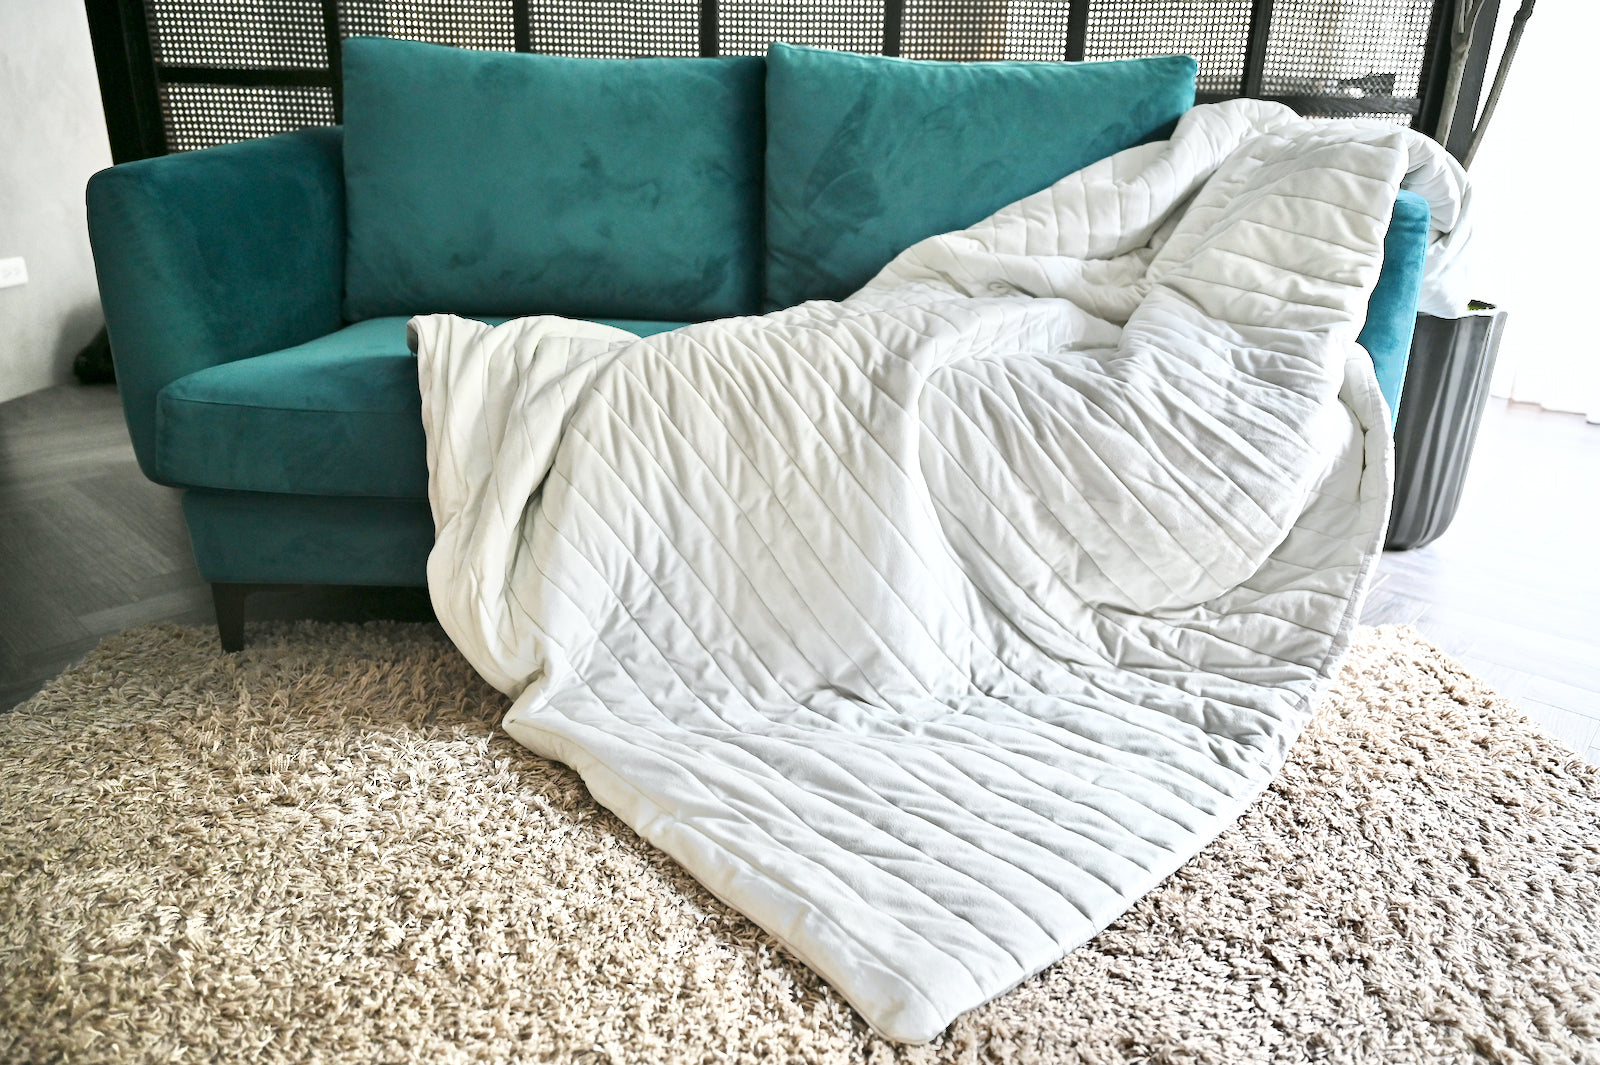 Cushion Lab Calm Embrace Weighted Blanket on sofa